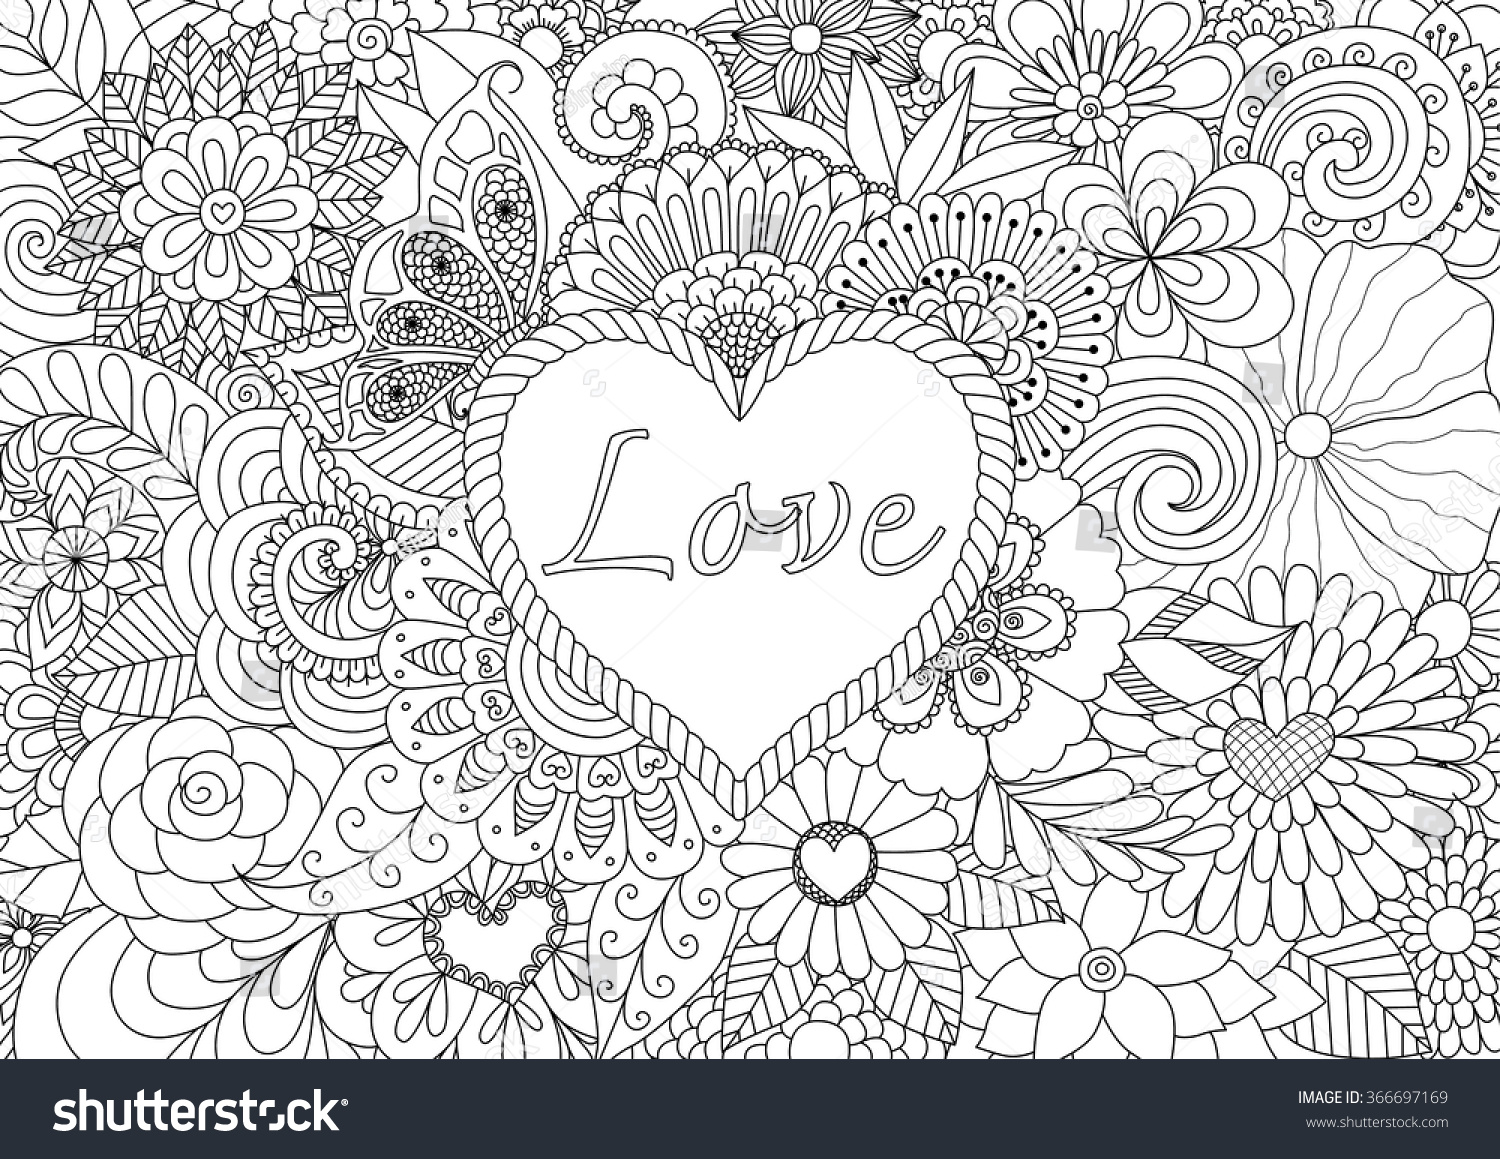 heart on flowers coloring books adult stock vector 366697169